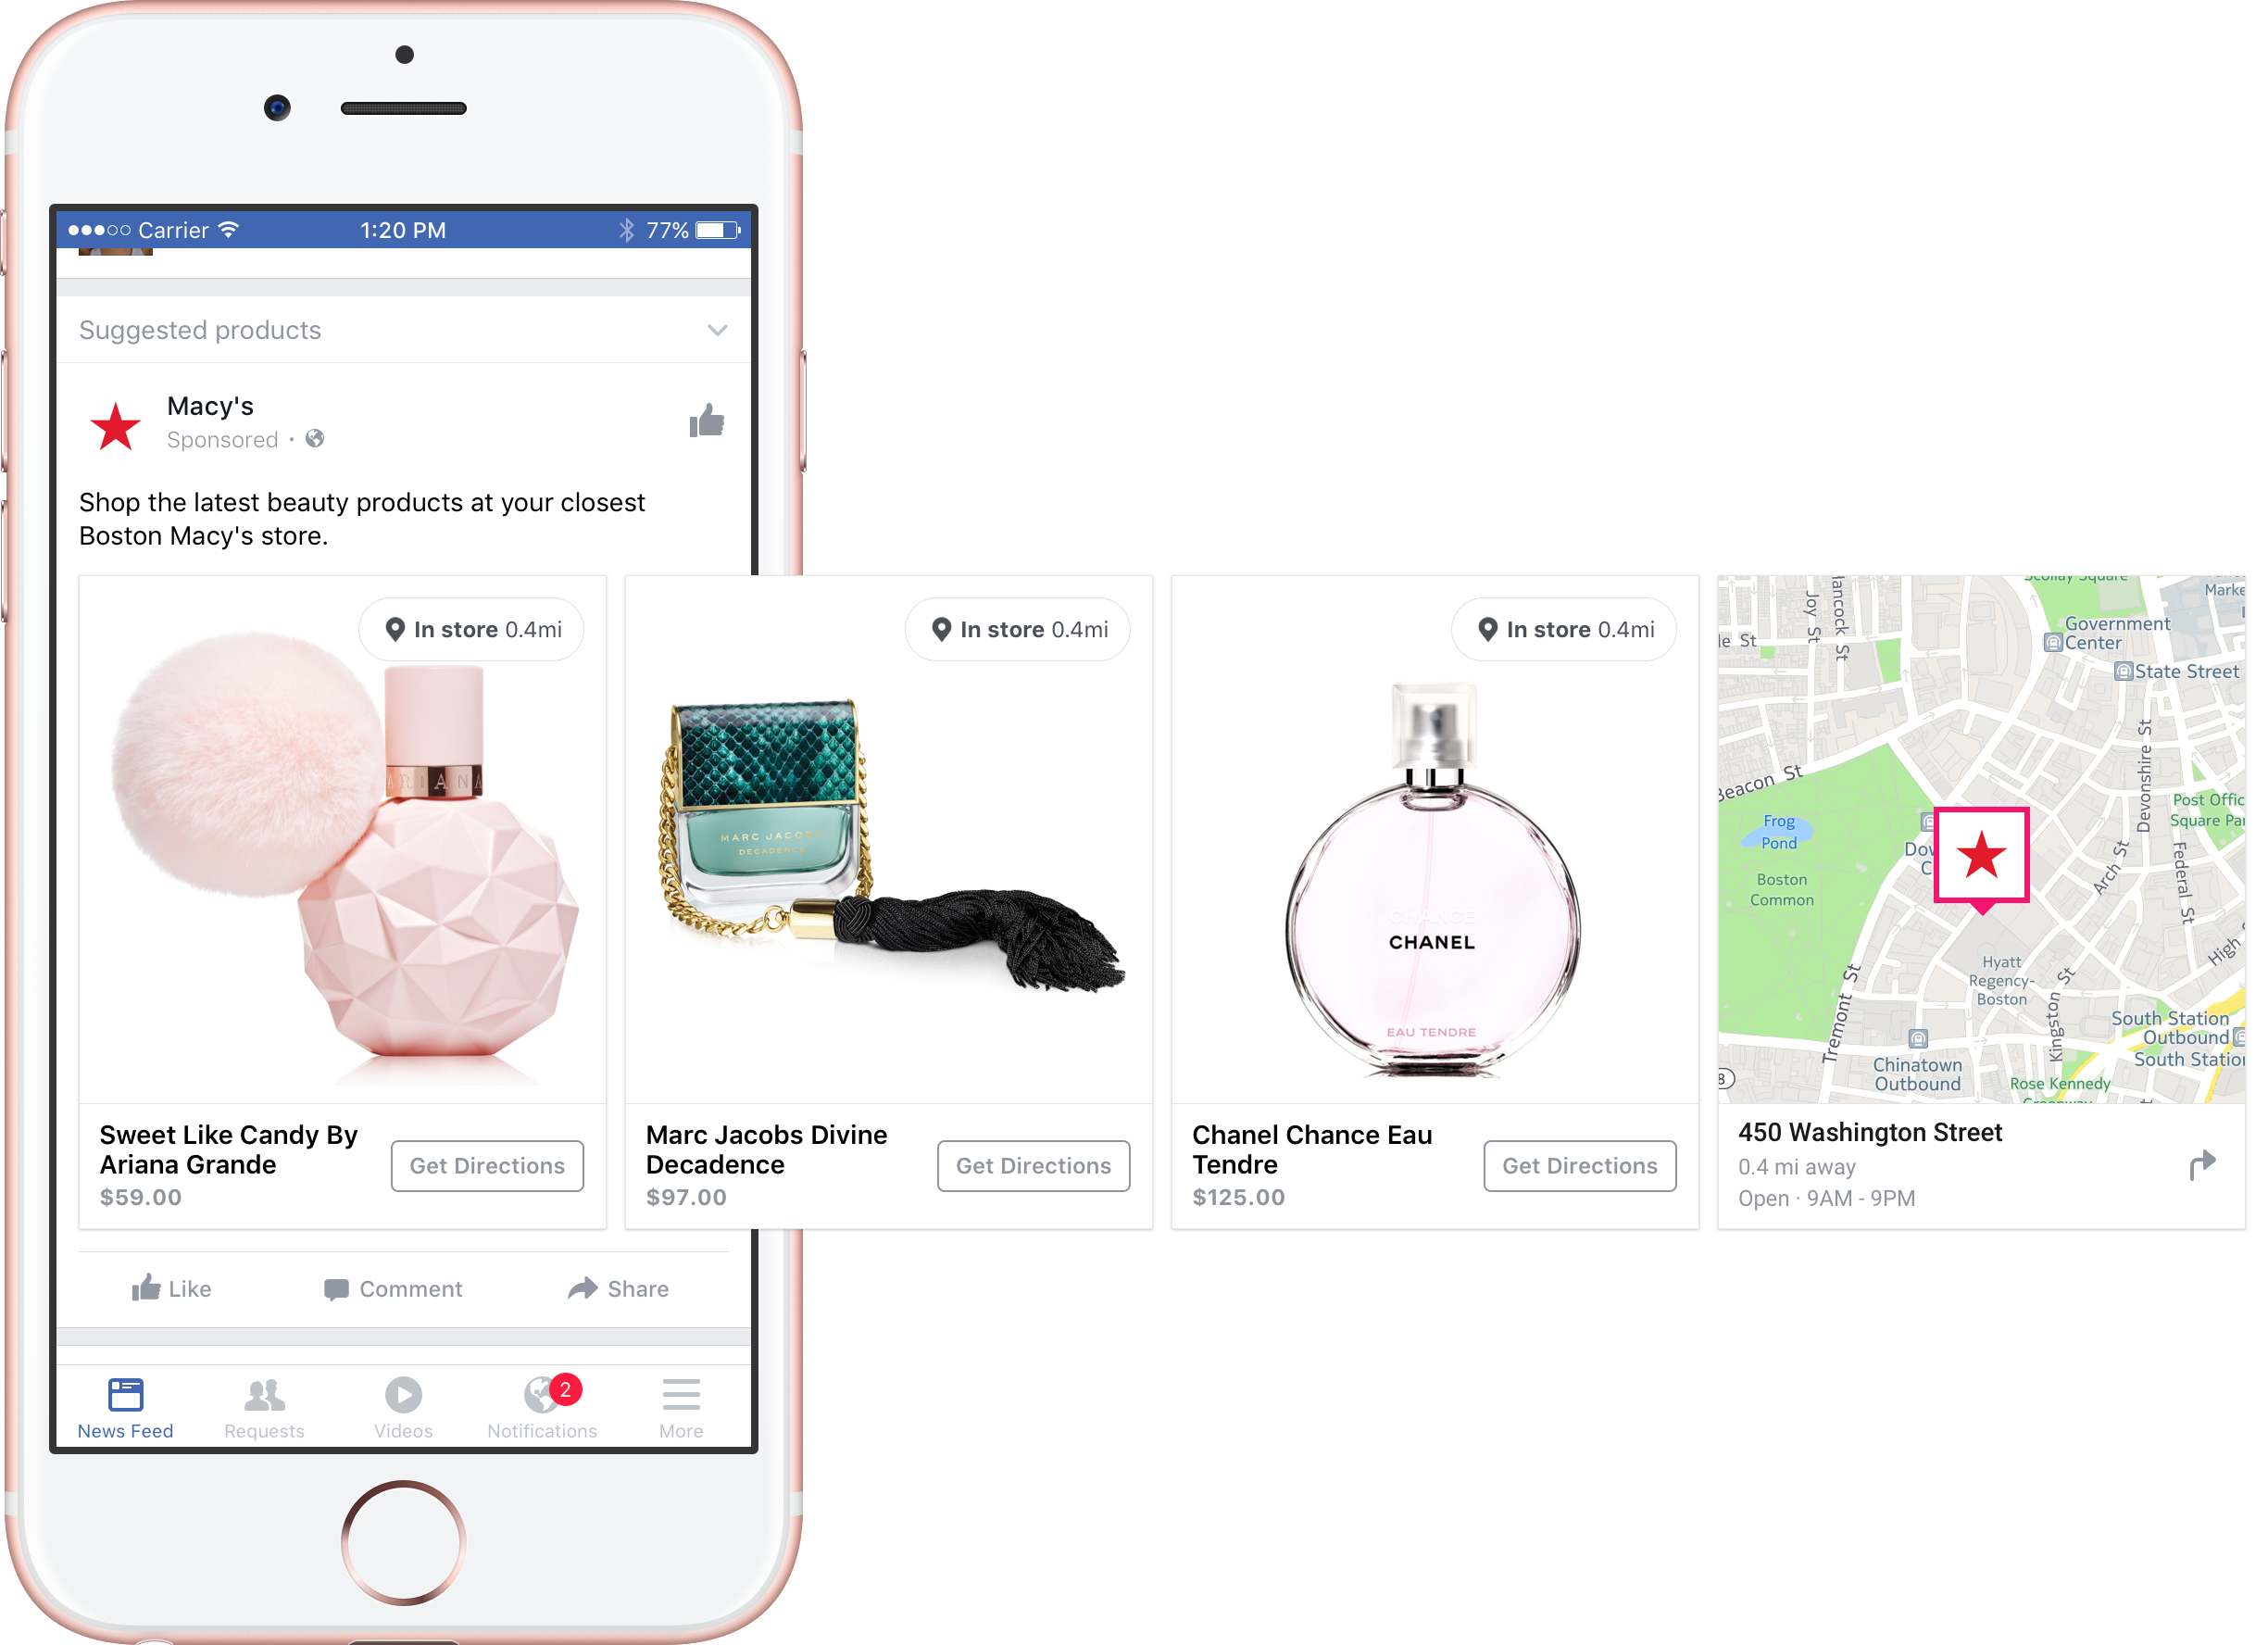 facebook_launched_dynamic-ads-for-retail_01